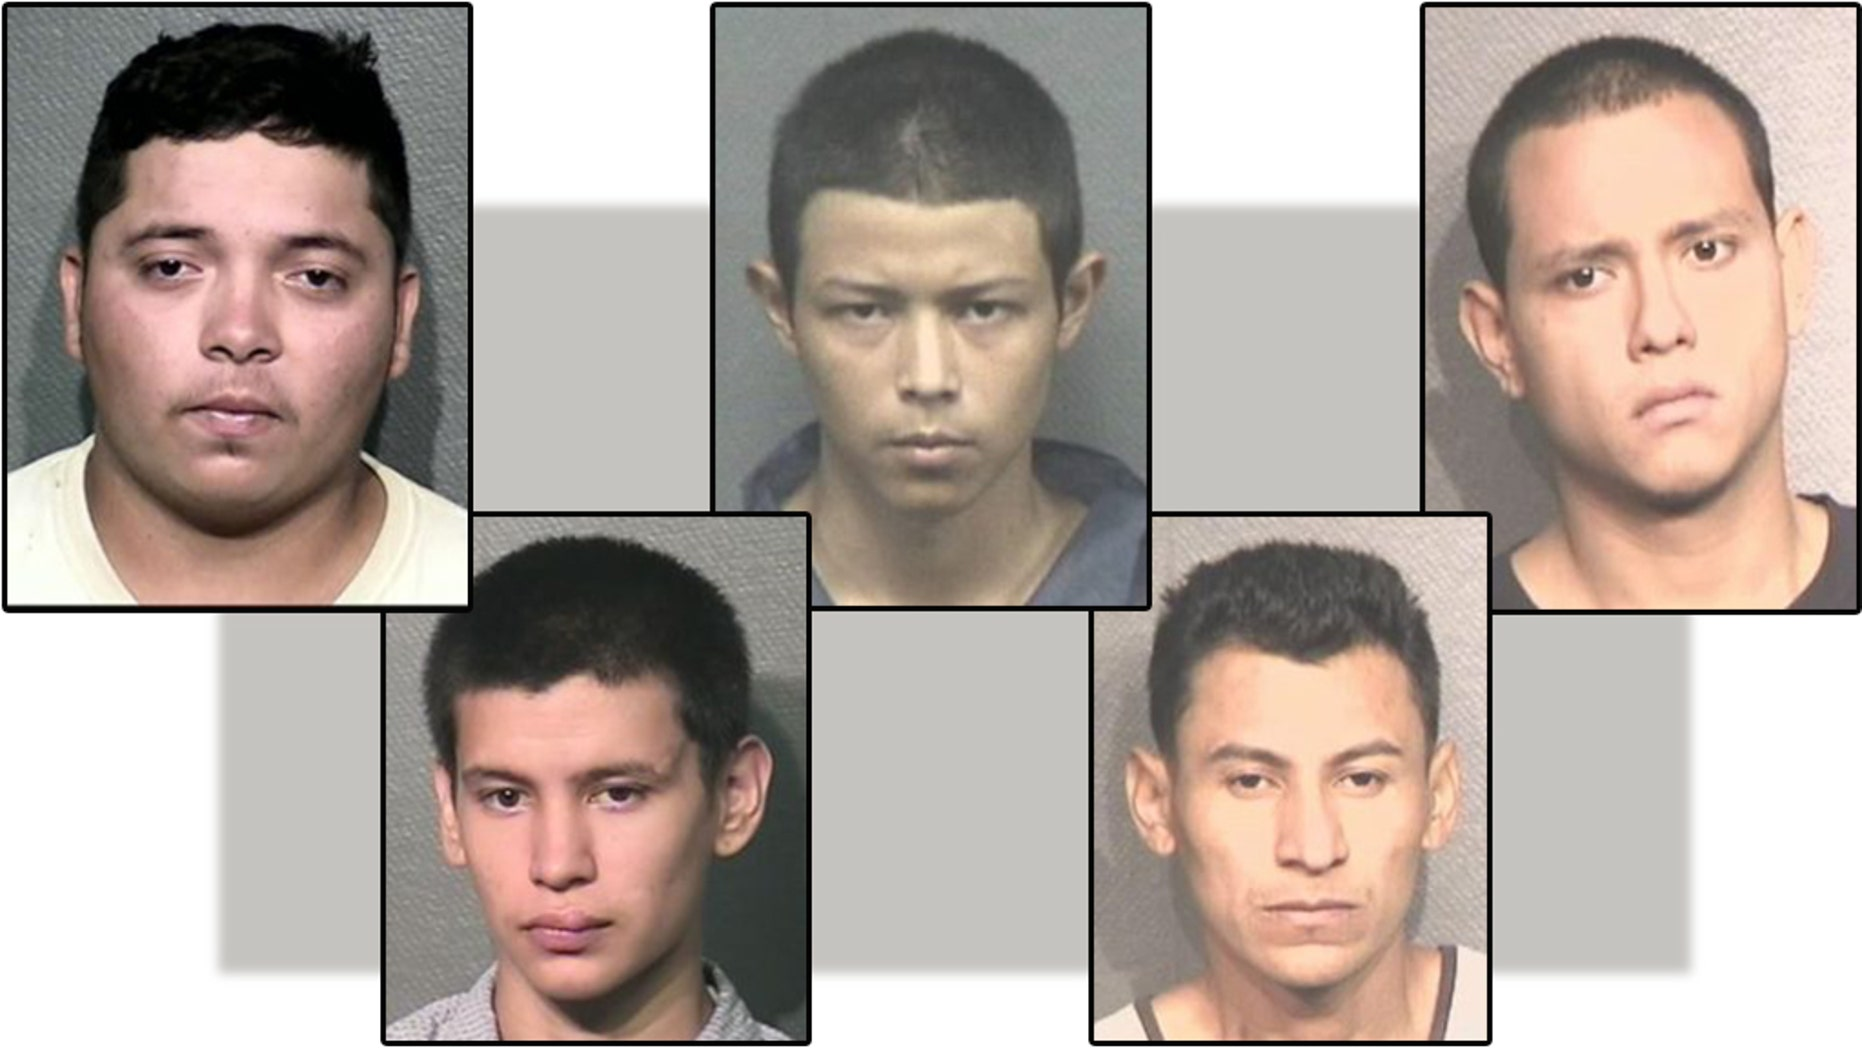 Francisco Antonio Rodriguez-Ulloa, left, is a member of the deadly MS-13 gang was charged with murder on Tuesday, according to police. Four other MS-13 gang members, pictured above, were also charged with murder. From left to right: Carlos Elias Henriquez-Torres, Marlon A. Miranda, Miguel Aguilar-Ochoa, Wilson J. Ventura-Mejia.